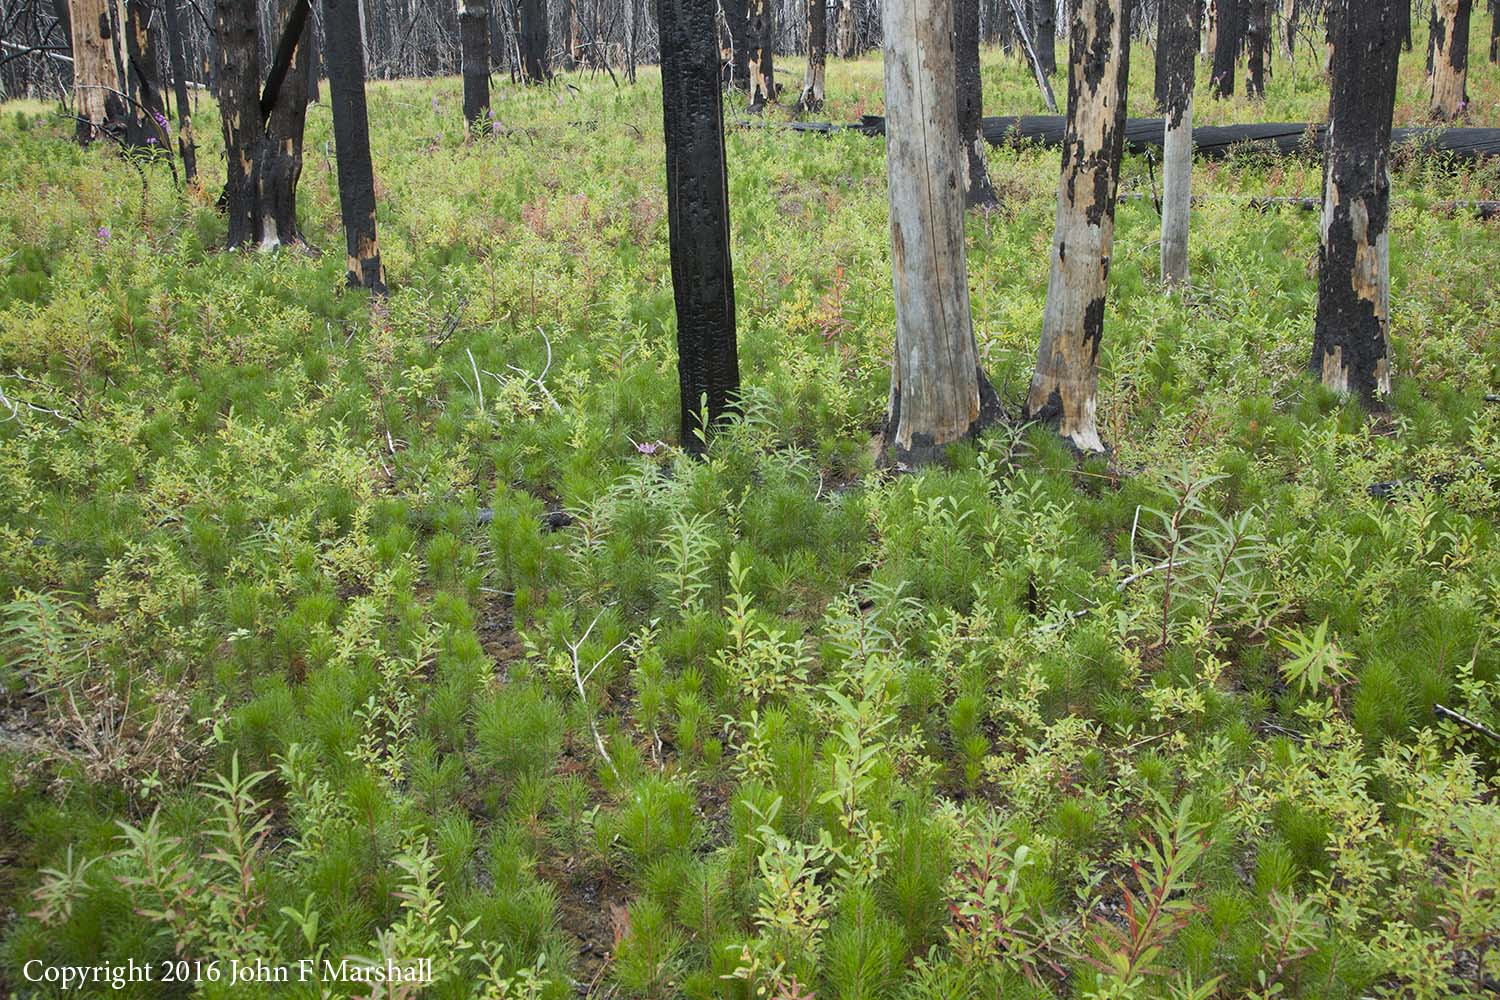 Four years have passed since the Naneum Meadows area burned.  The progeny from years of stored up lodgepole pine cones can be seen here.   I did not see seedlings of any other tree species. Lodgepole pine stands are known to produce up to 320,000 seeds per acre!